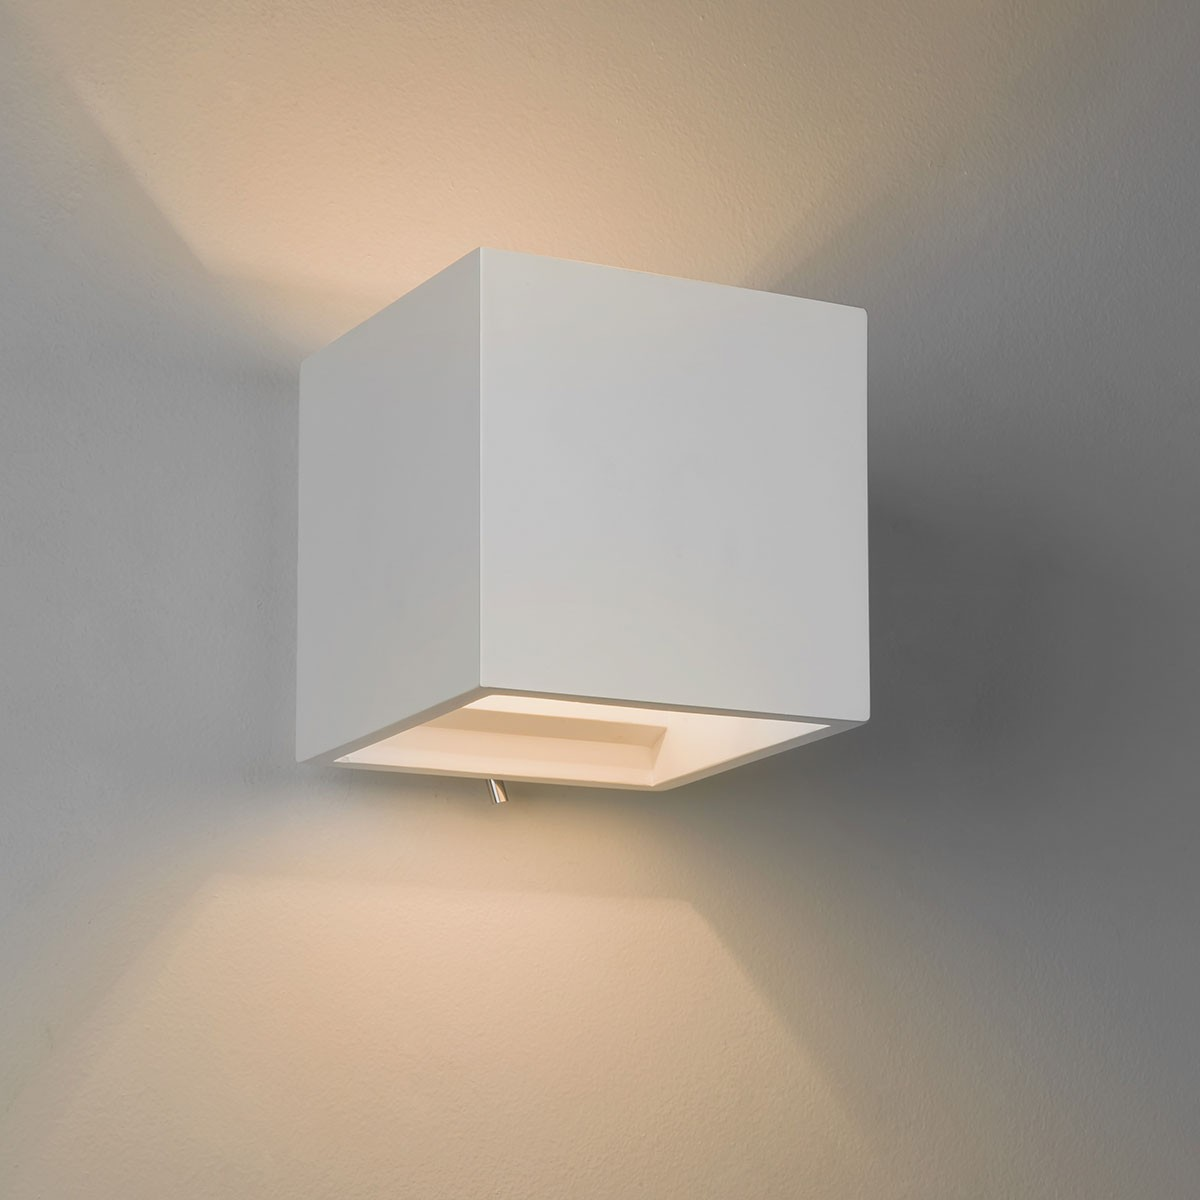 astro pienza 140 switched plaster wall light at uk electrical supplies. Black Bedroom Furniture Sets. Home Design Ideas